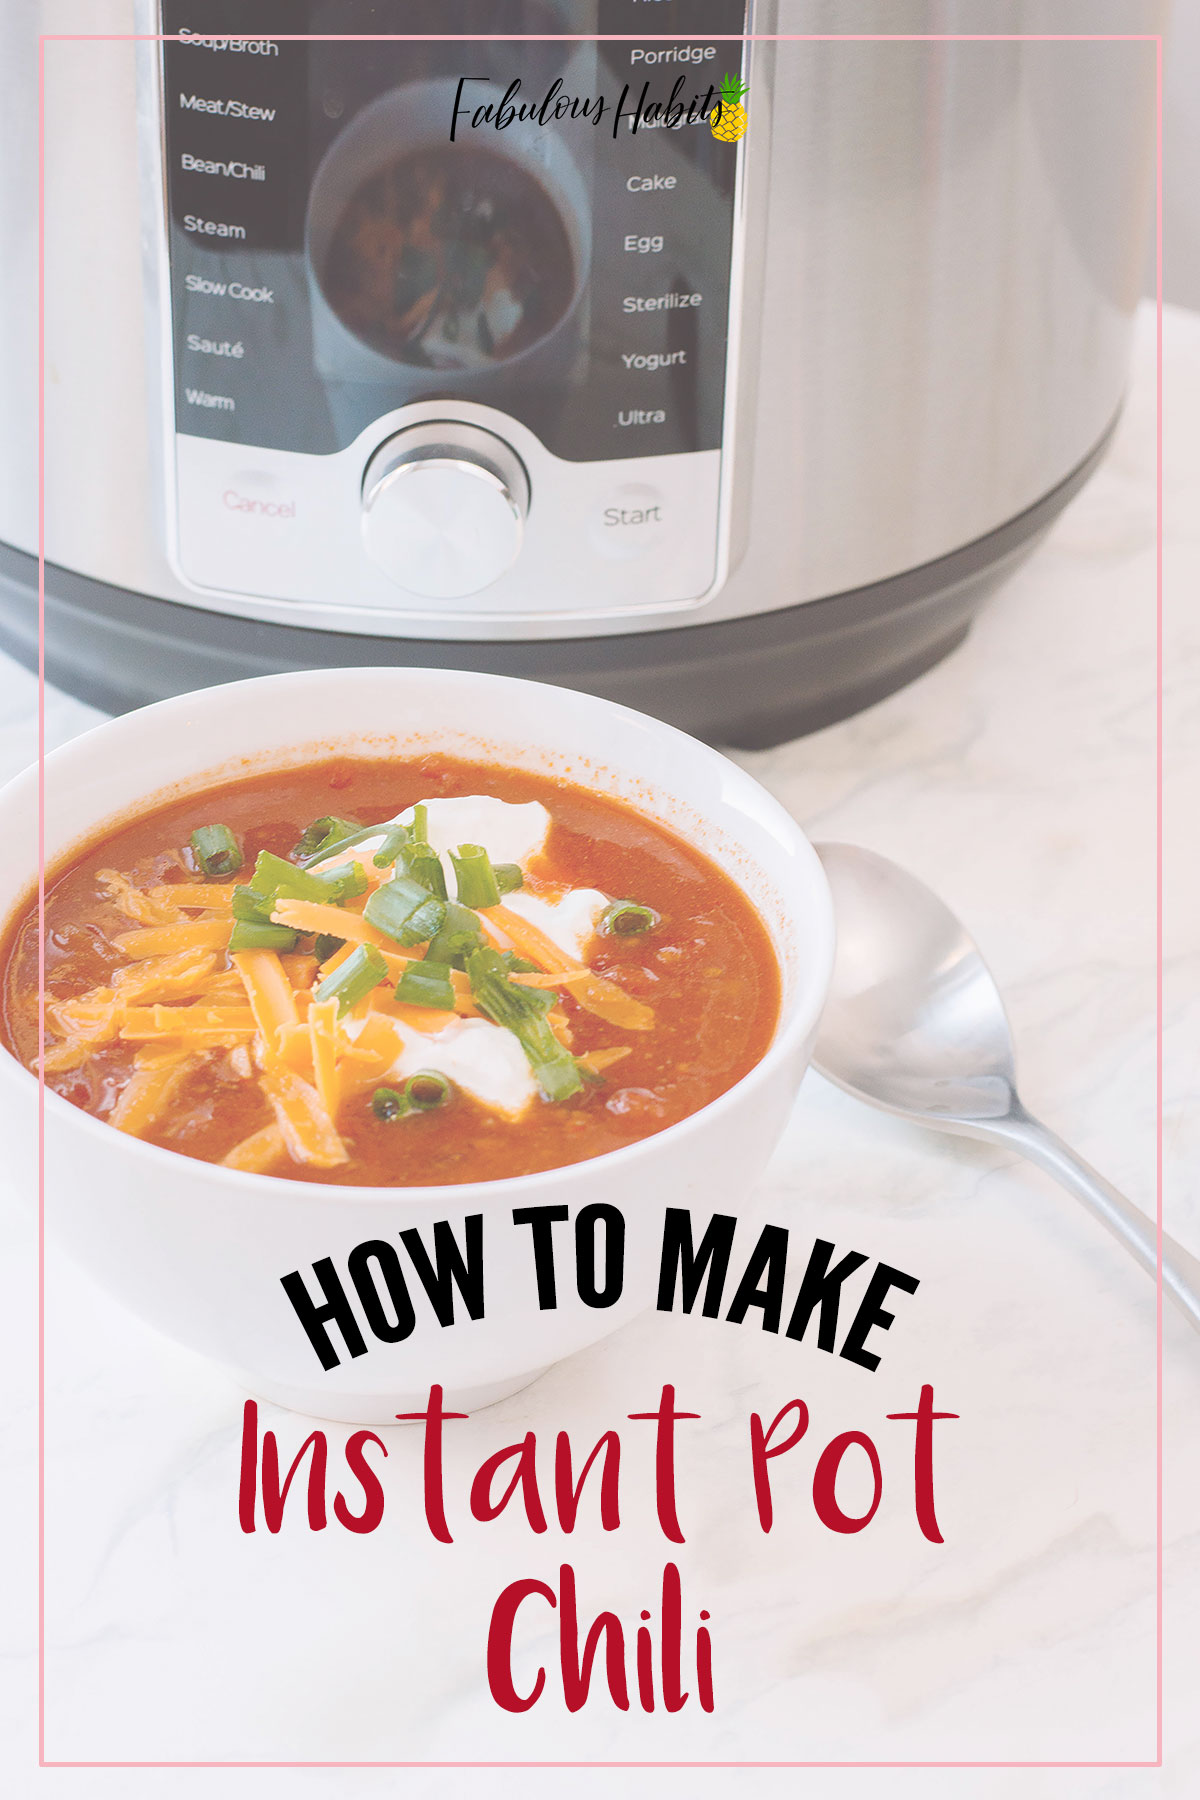 Here is our surefire recipe for Instant Pot Chili. You can make it all in the Instant Pot! Easy preparation and easy clean-up - double win! #instantpotrecipes